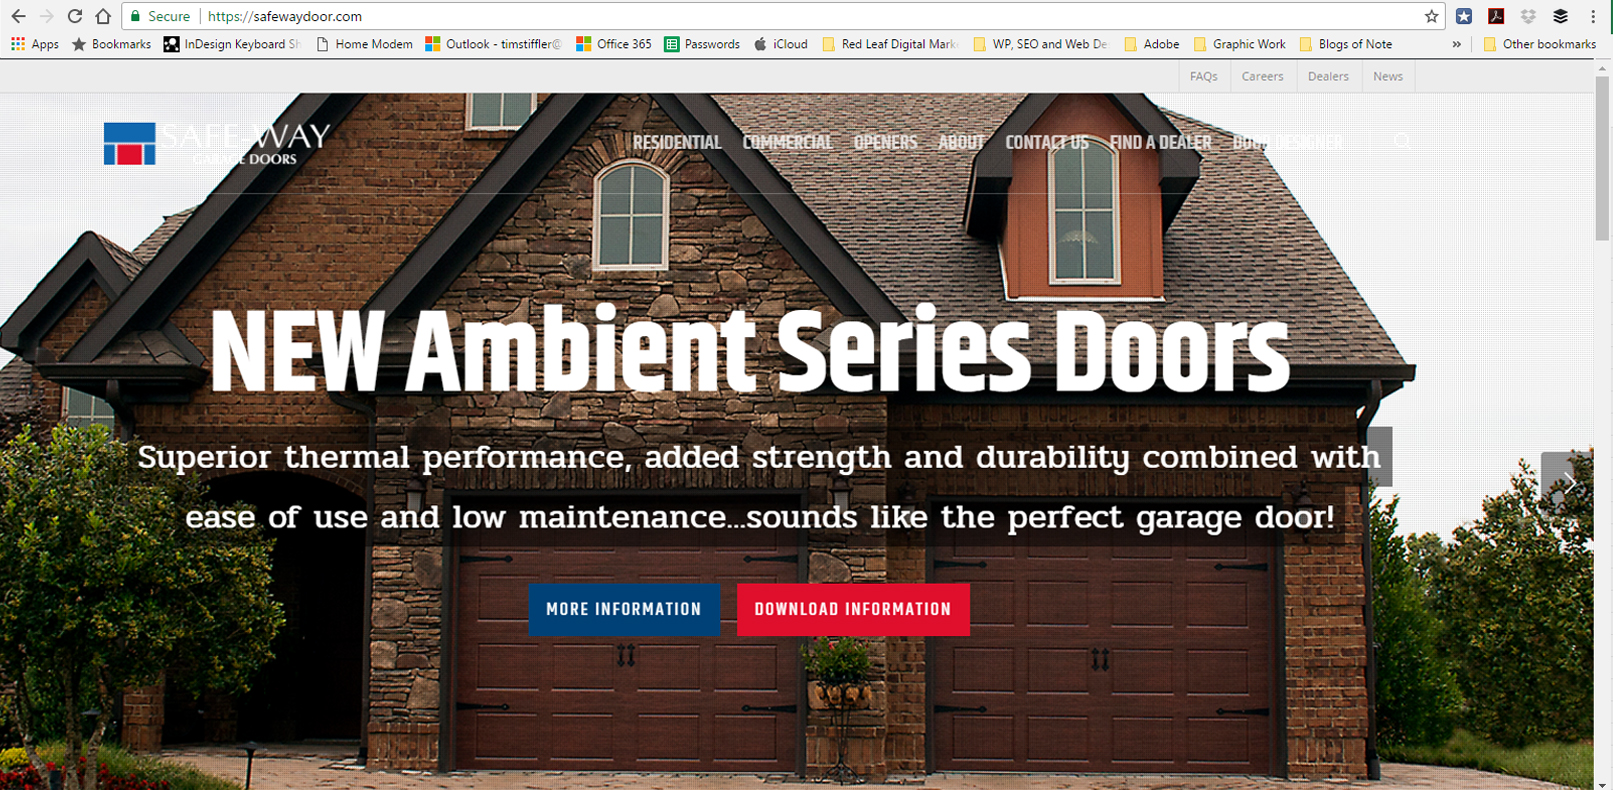 & Safe-Way Door Announces New Web Site and Two New Doors pezcame.com